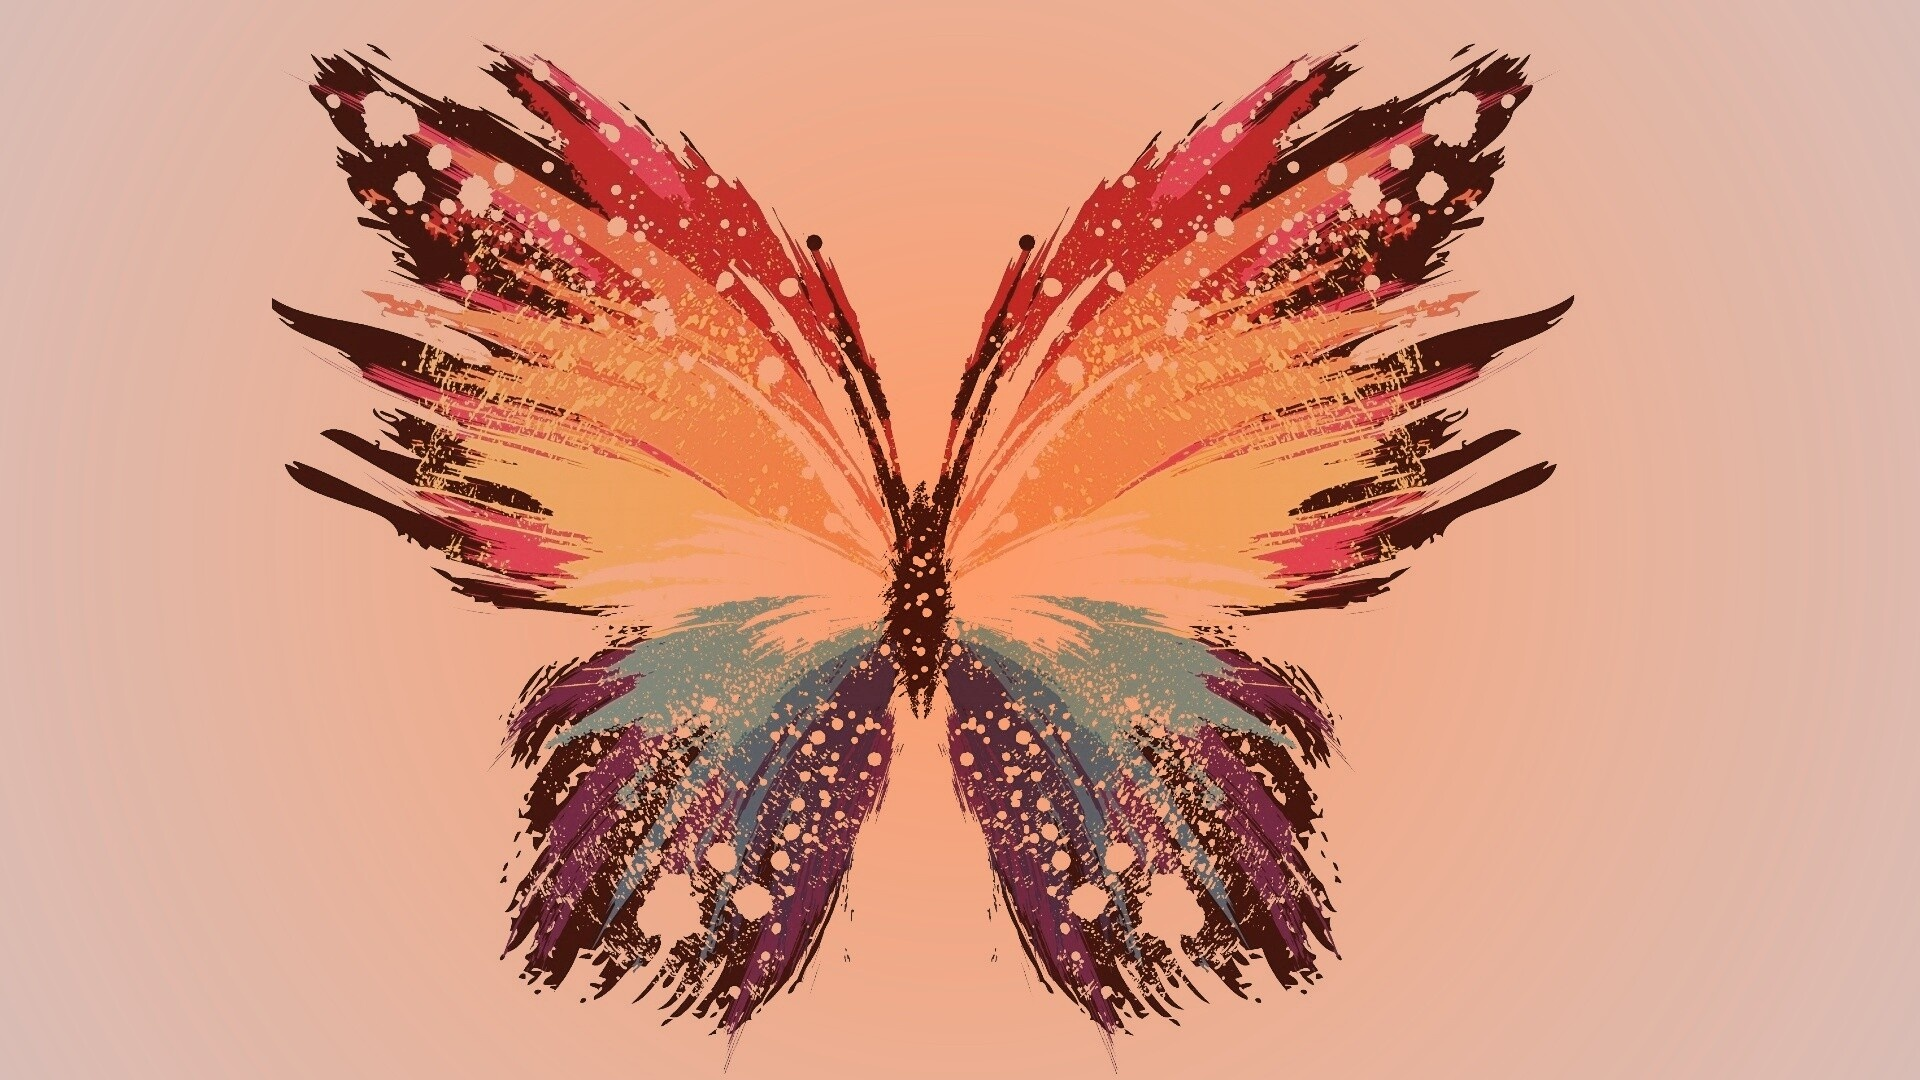 Butterfly background picture